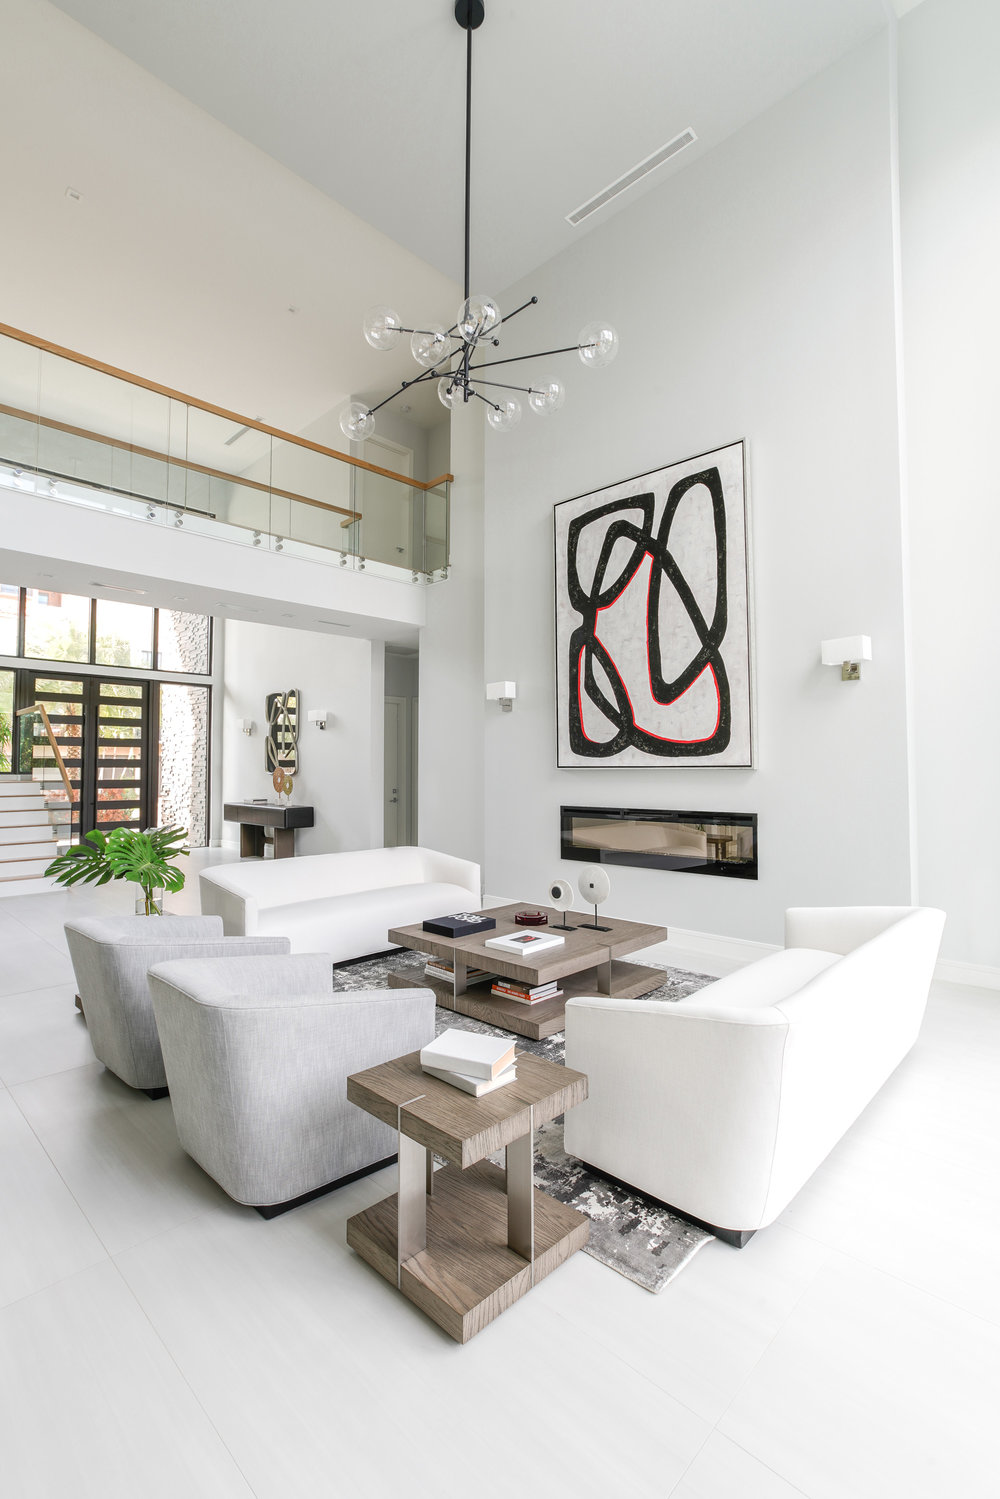 Contemporary Design - Boca Raton-9.jpg